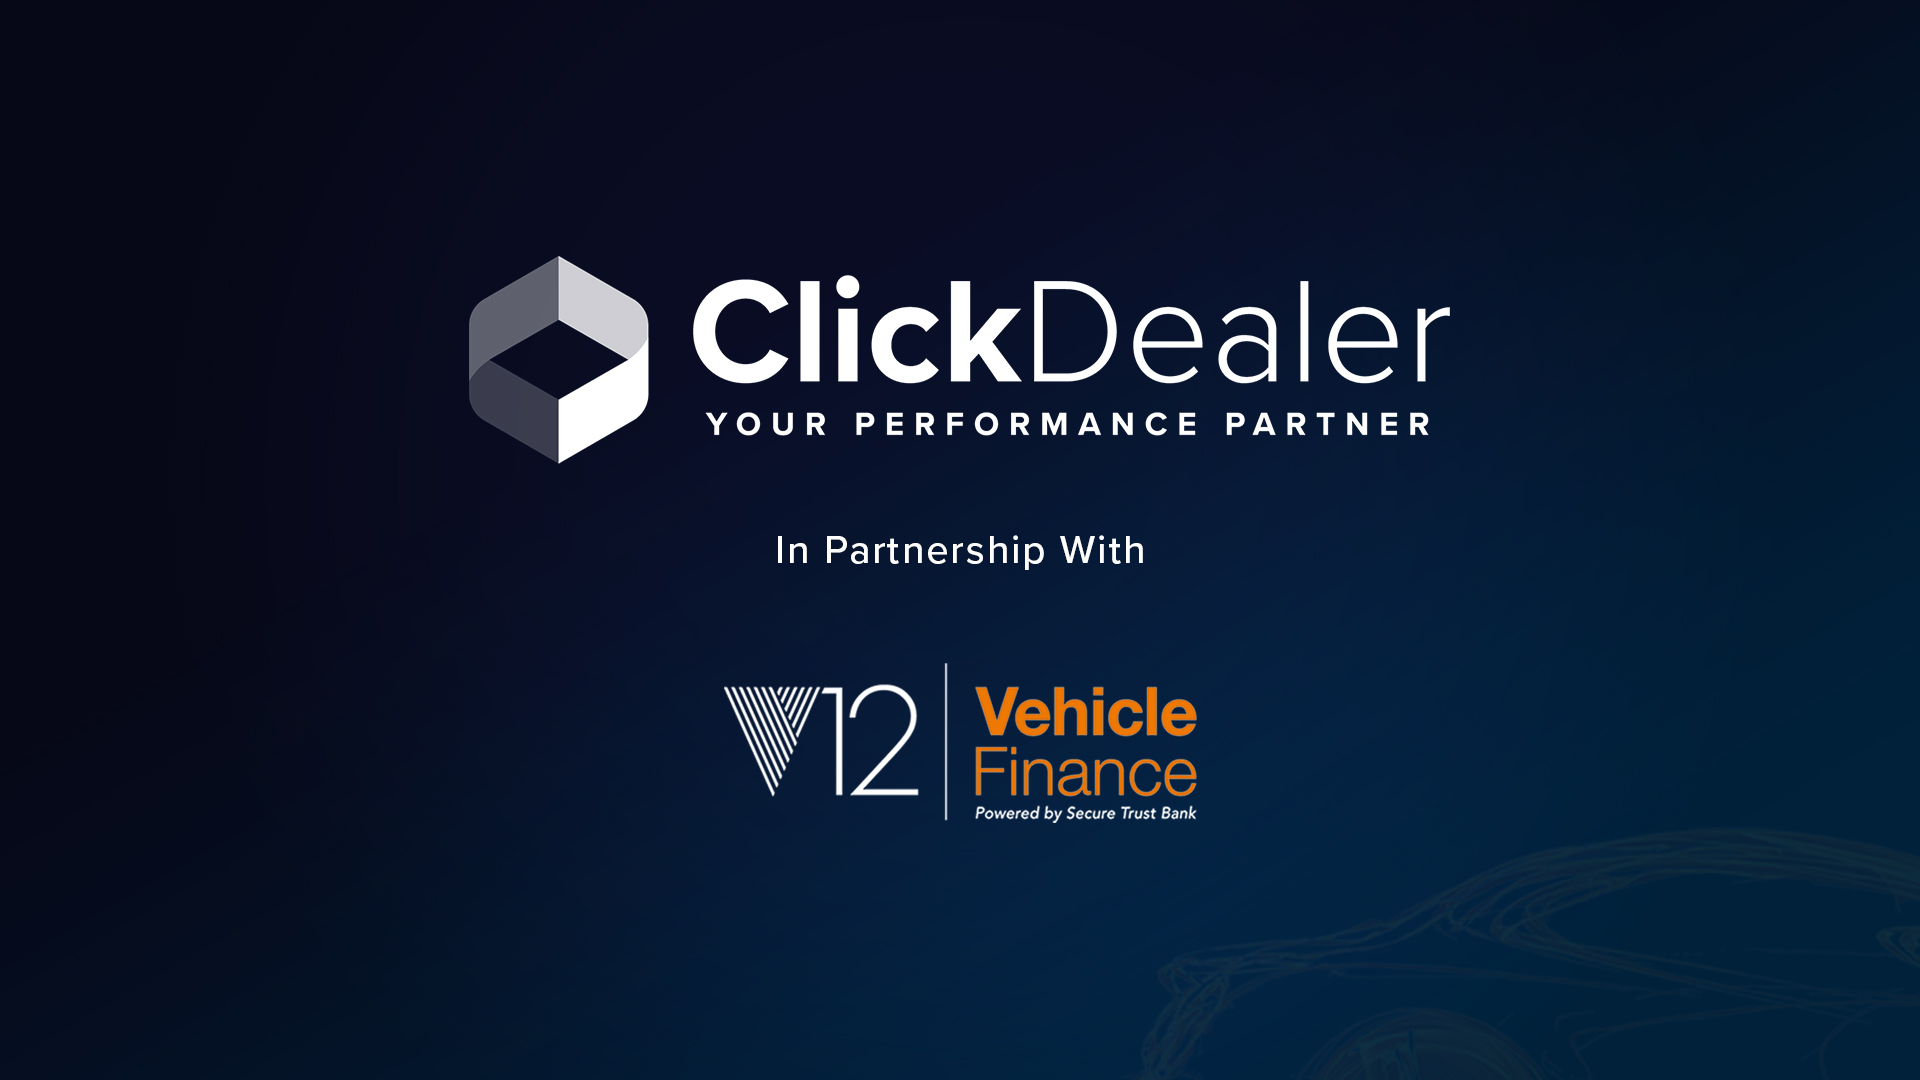 Click Dealer Partnership